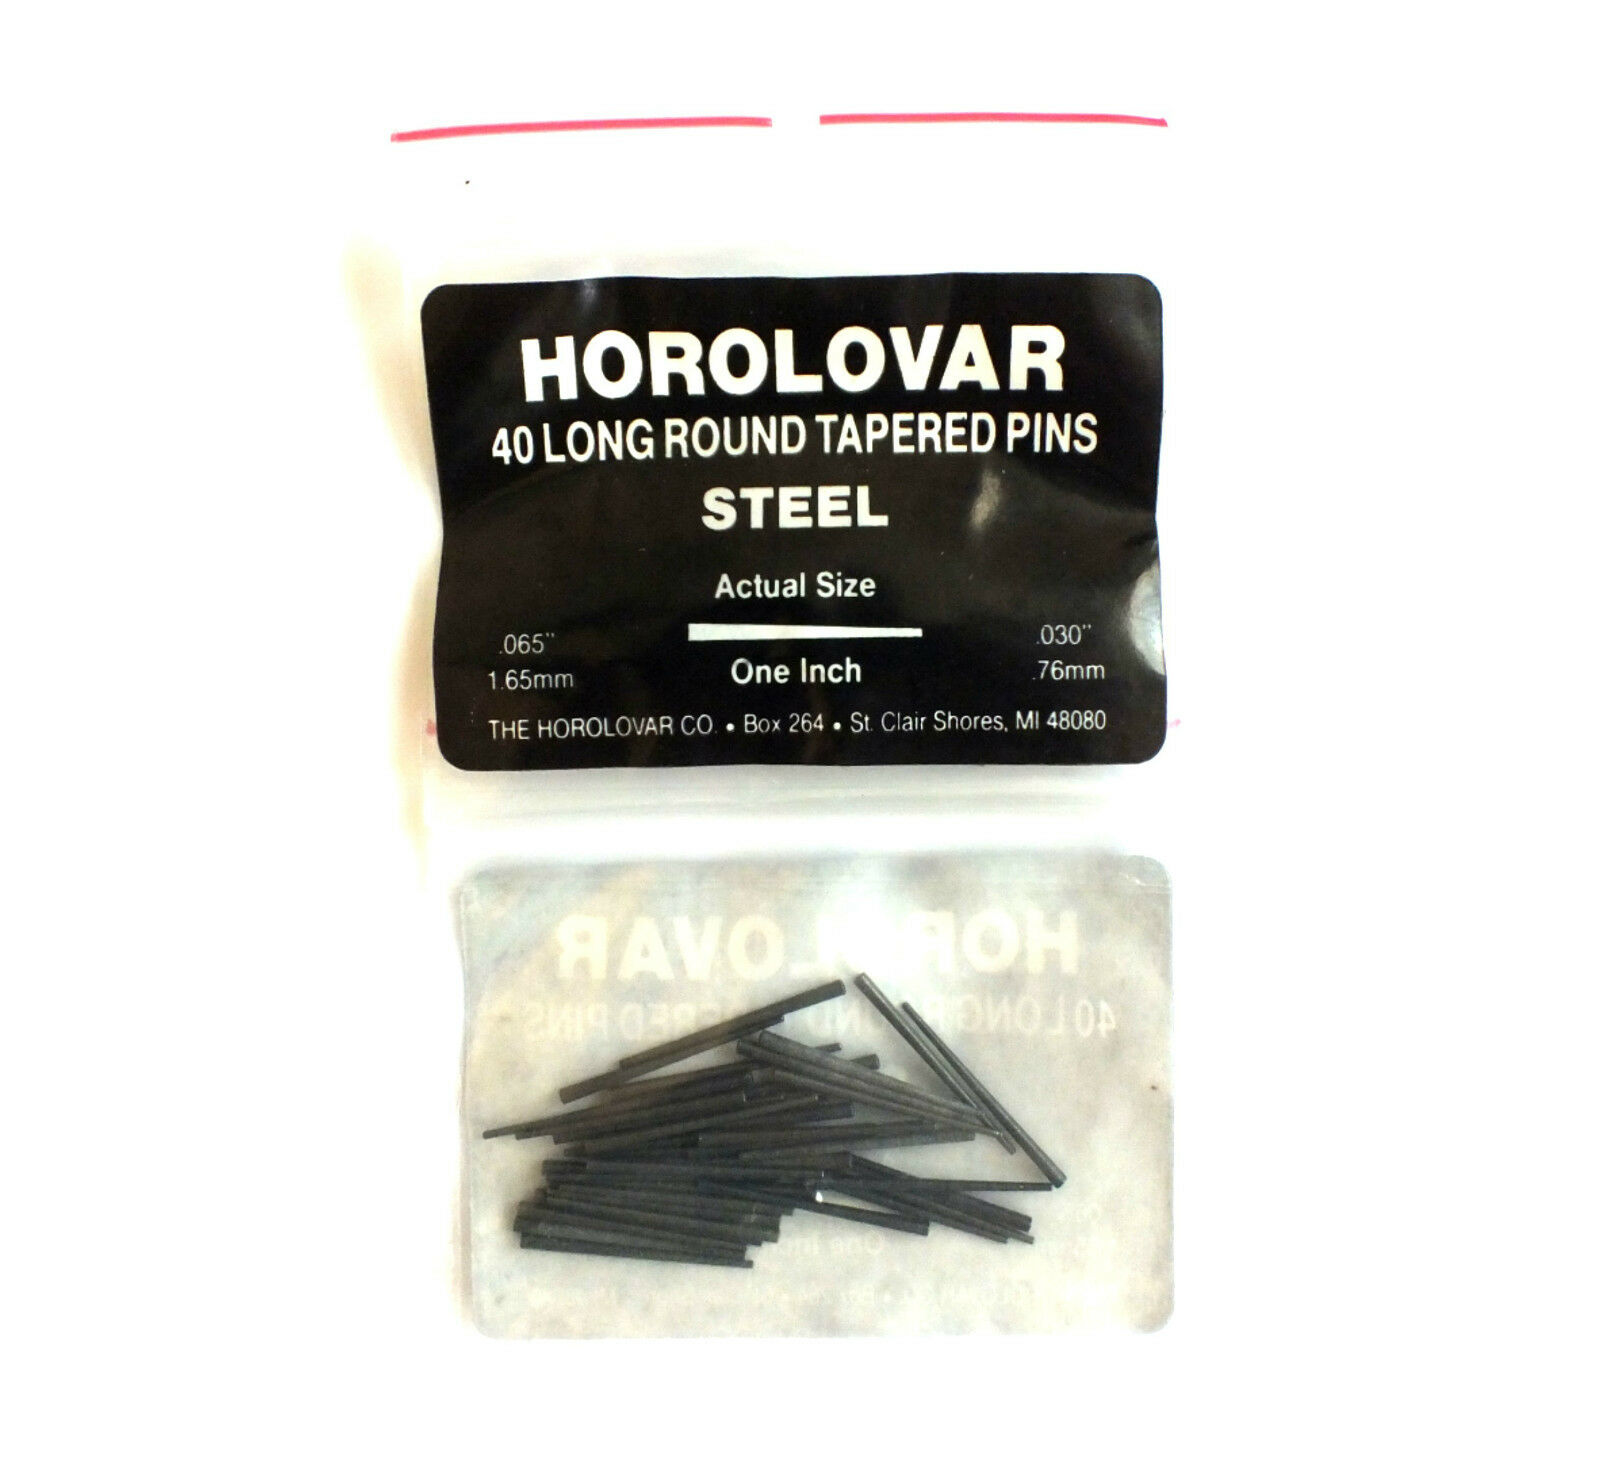 HOROLOVAR MEDIUM STEEL CLOCK TAPER PINS 25mm Long x 0.76mm - 1.65mm